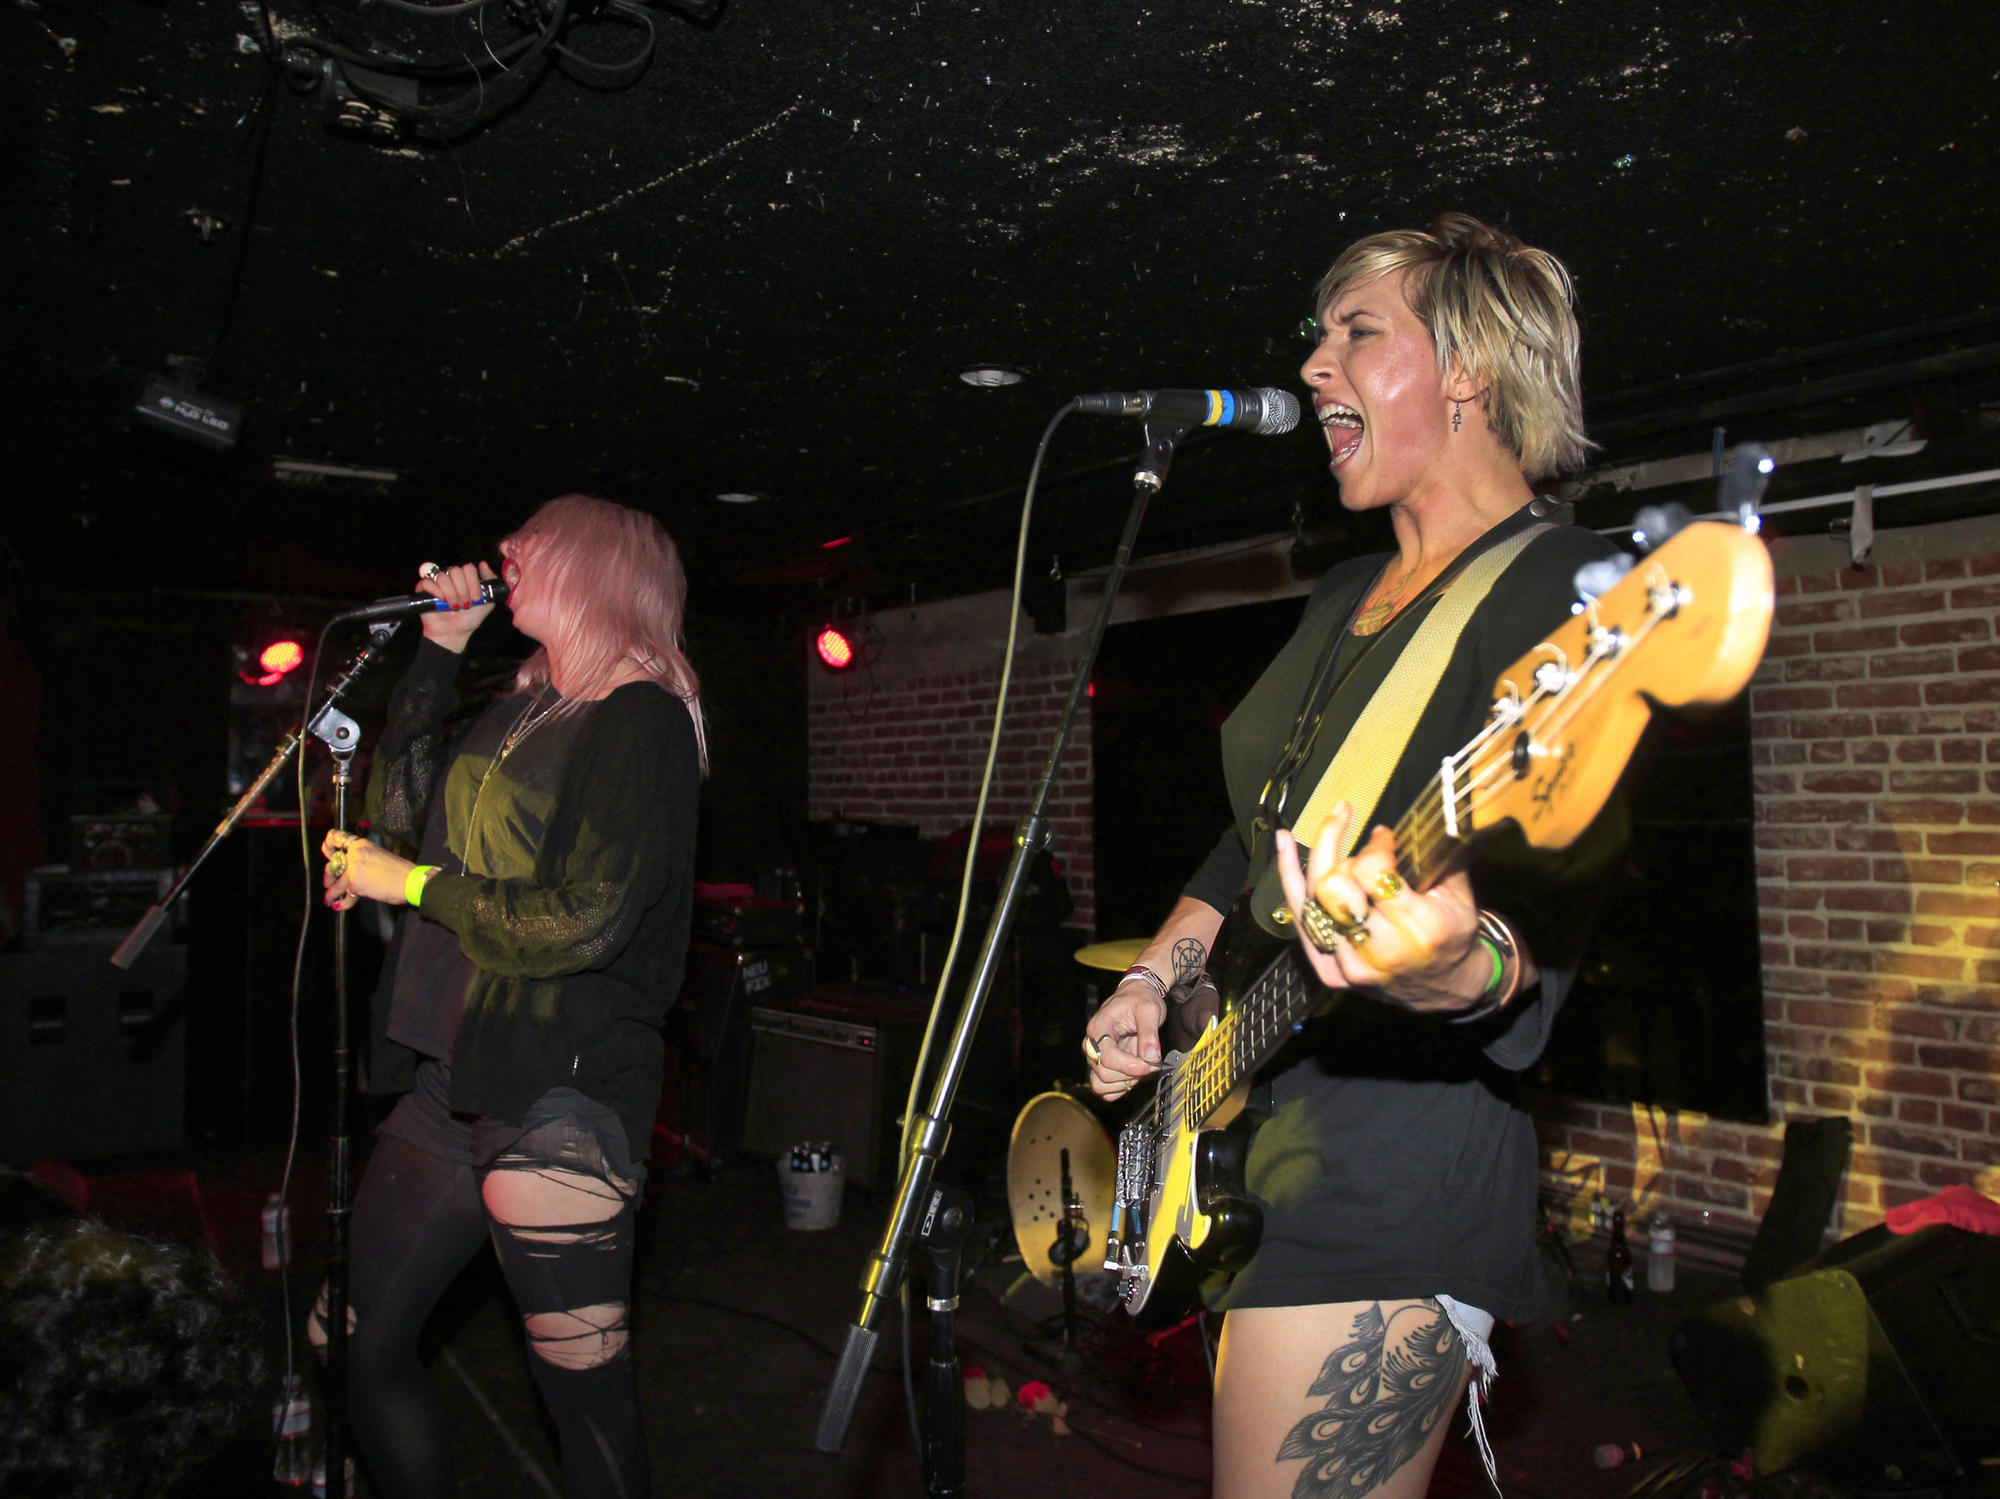 White Lung performs at Los Globos in Los Angeles on July 23, 2014.